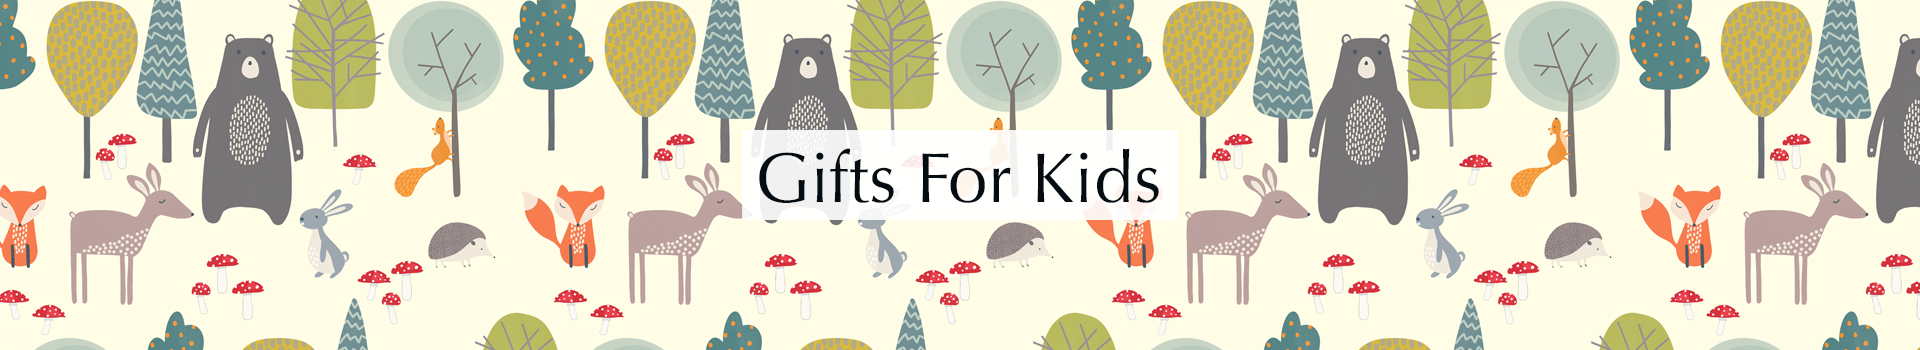 gifts-for-kids.png